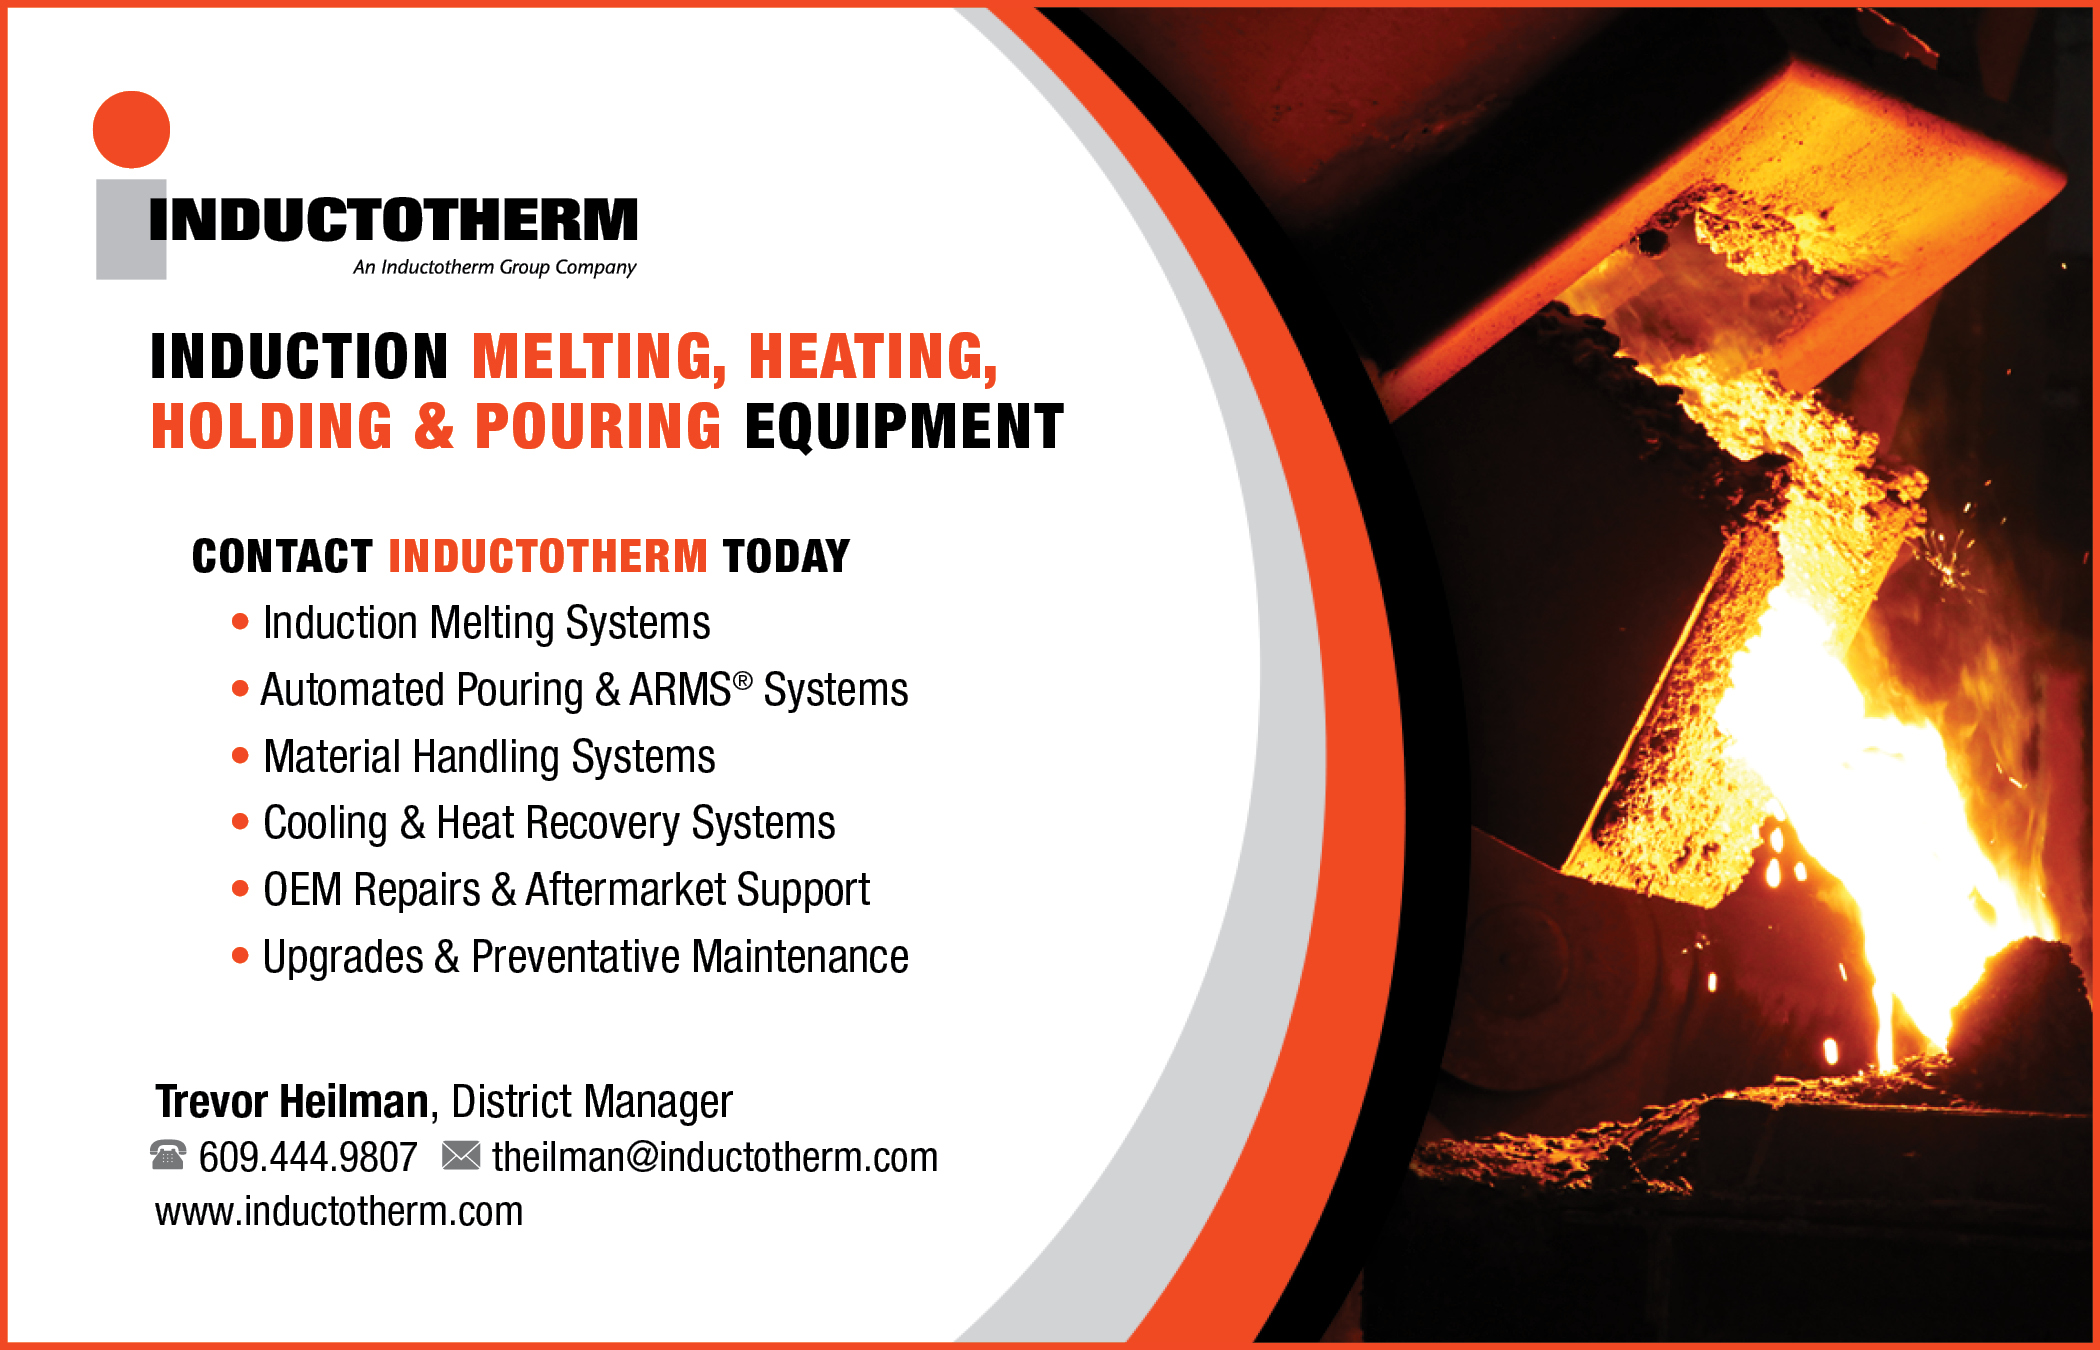 InductothermInduction Melting, Heating, Holding & Pouring Equipment609-444-9807 -